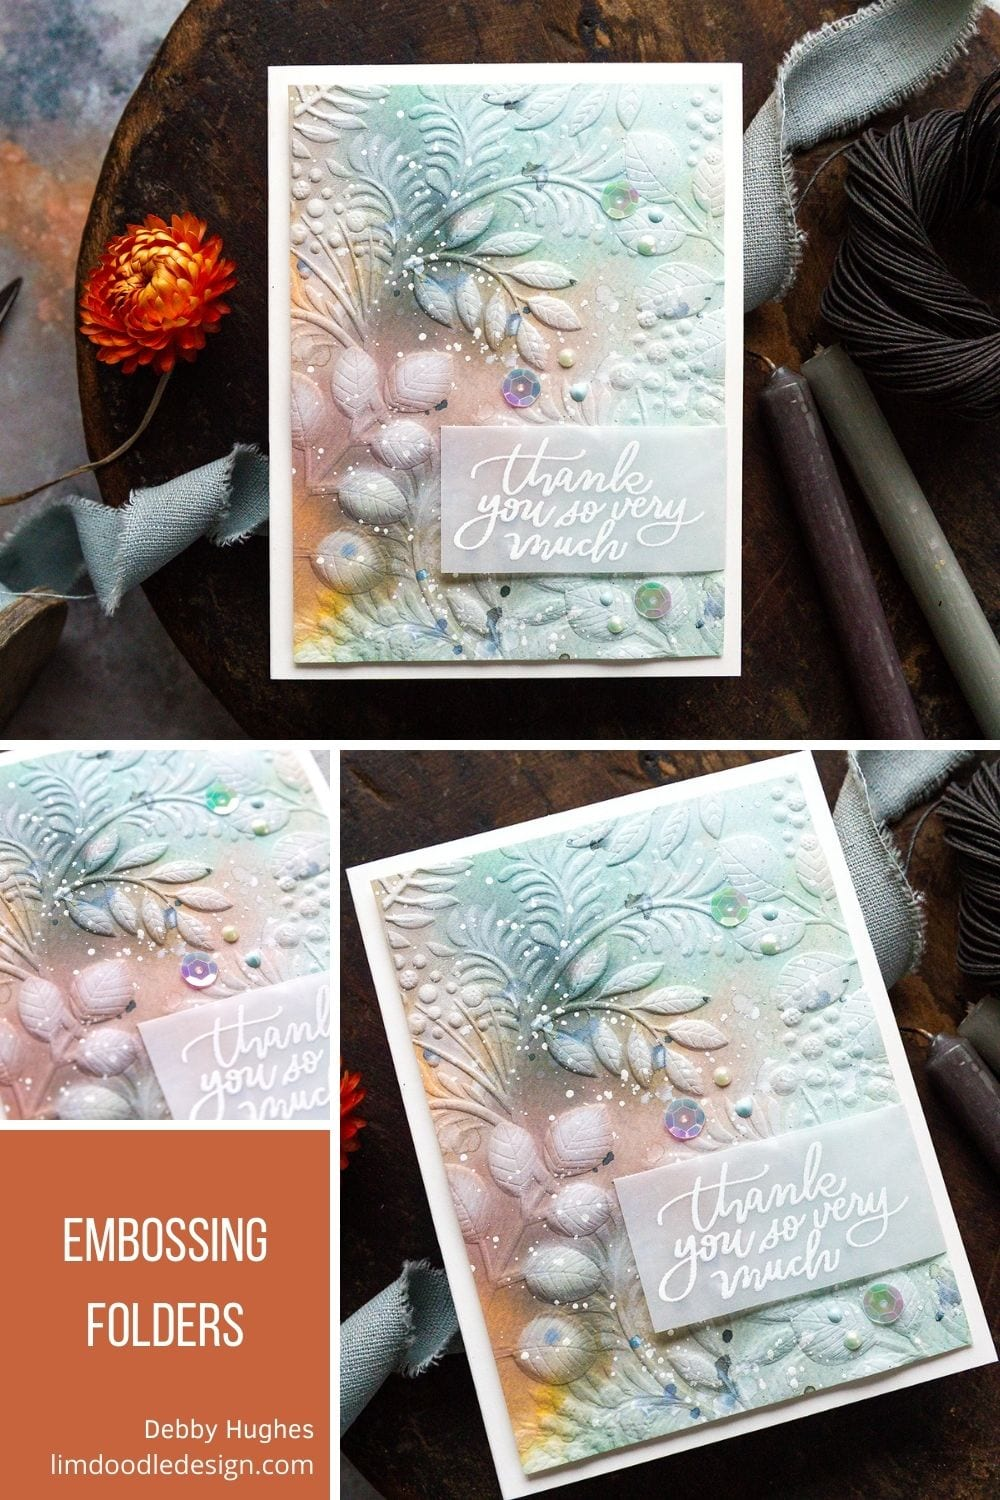 Video tutorial quick and easy detail with embossing folders using supples from Simon Says Stamp and Tim Holtz. #timholtz #handmadecards #cardmaking #cardmakingideas #cardmakingtechniques  #cardmakingtutorials #handmadecardideas #simonsaysstamp